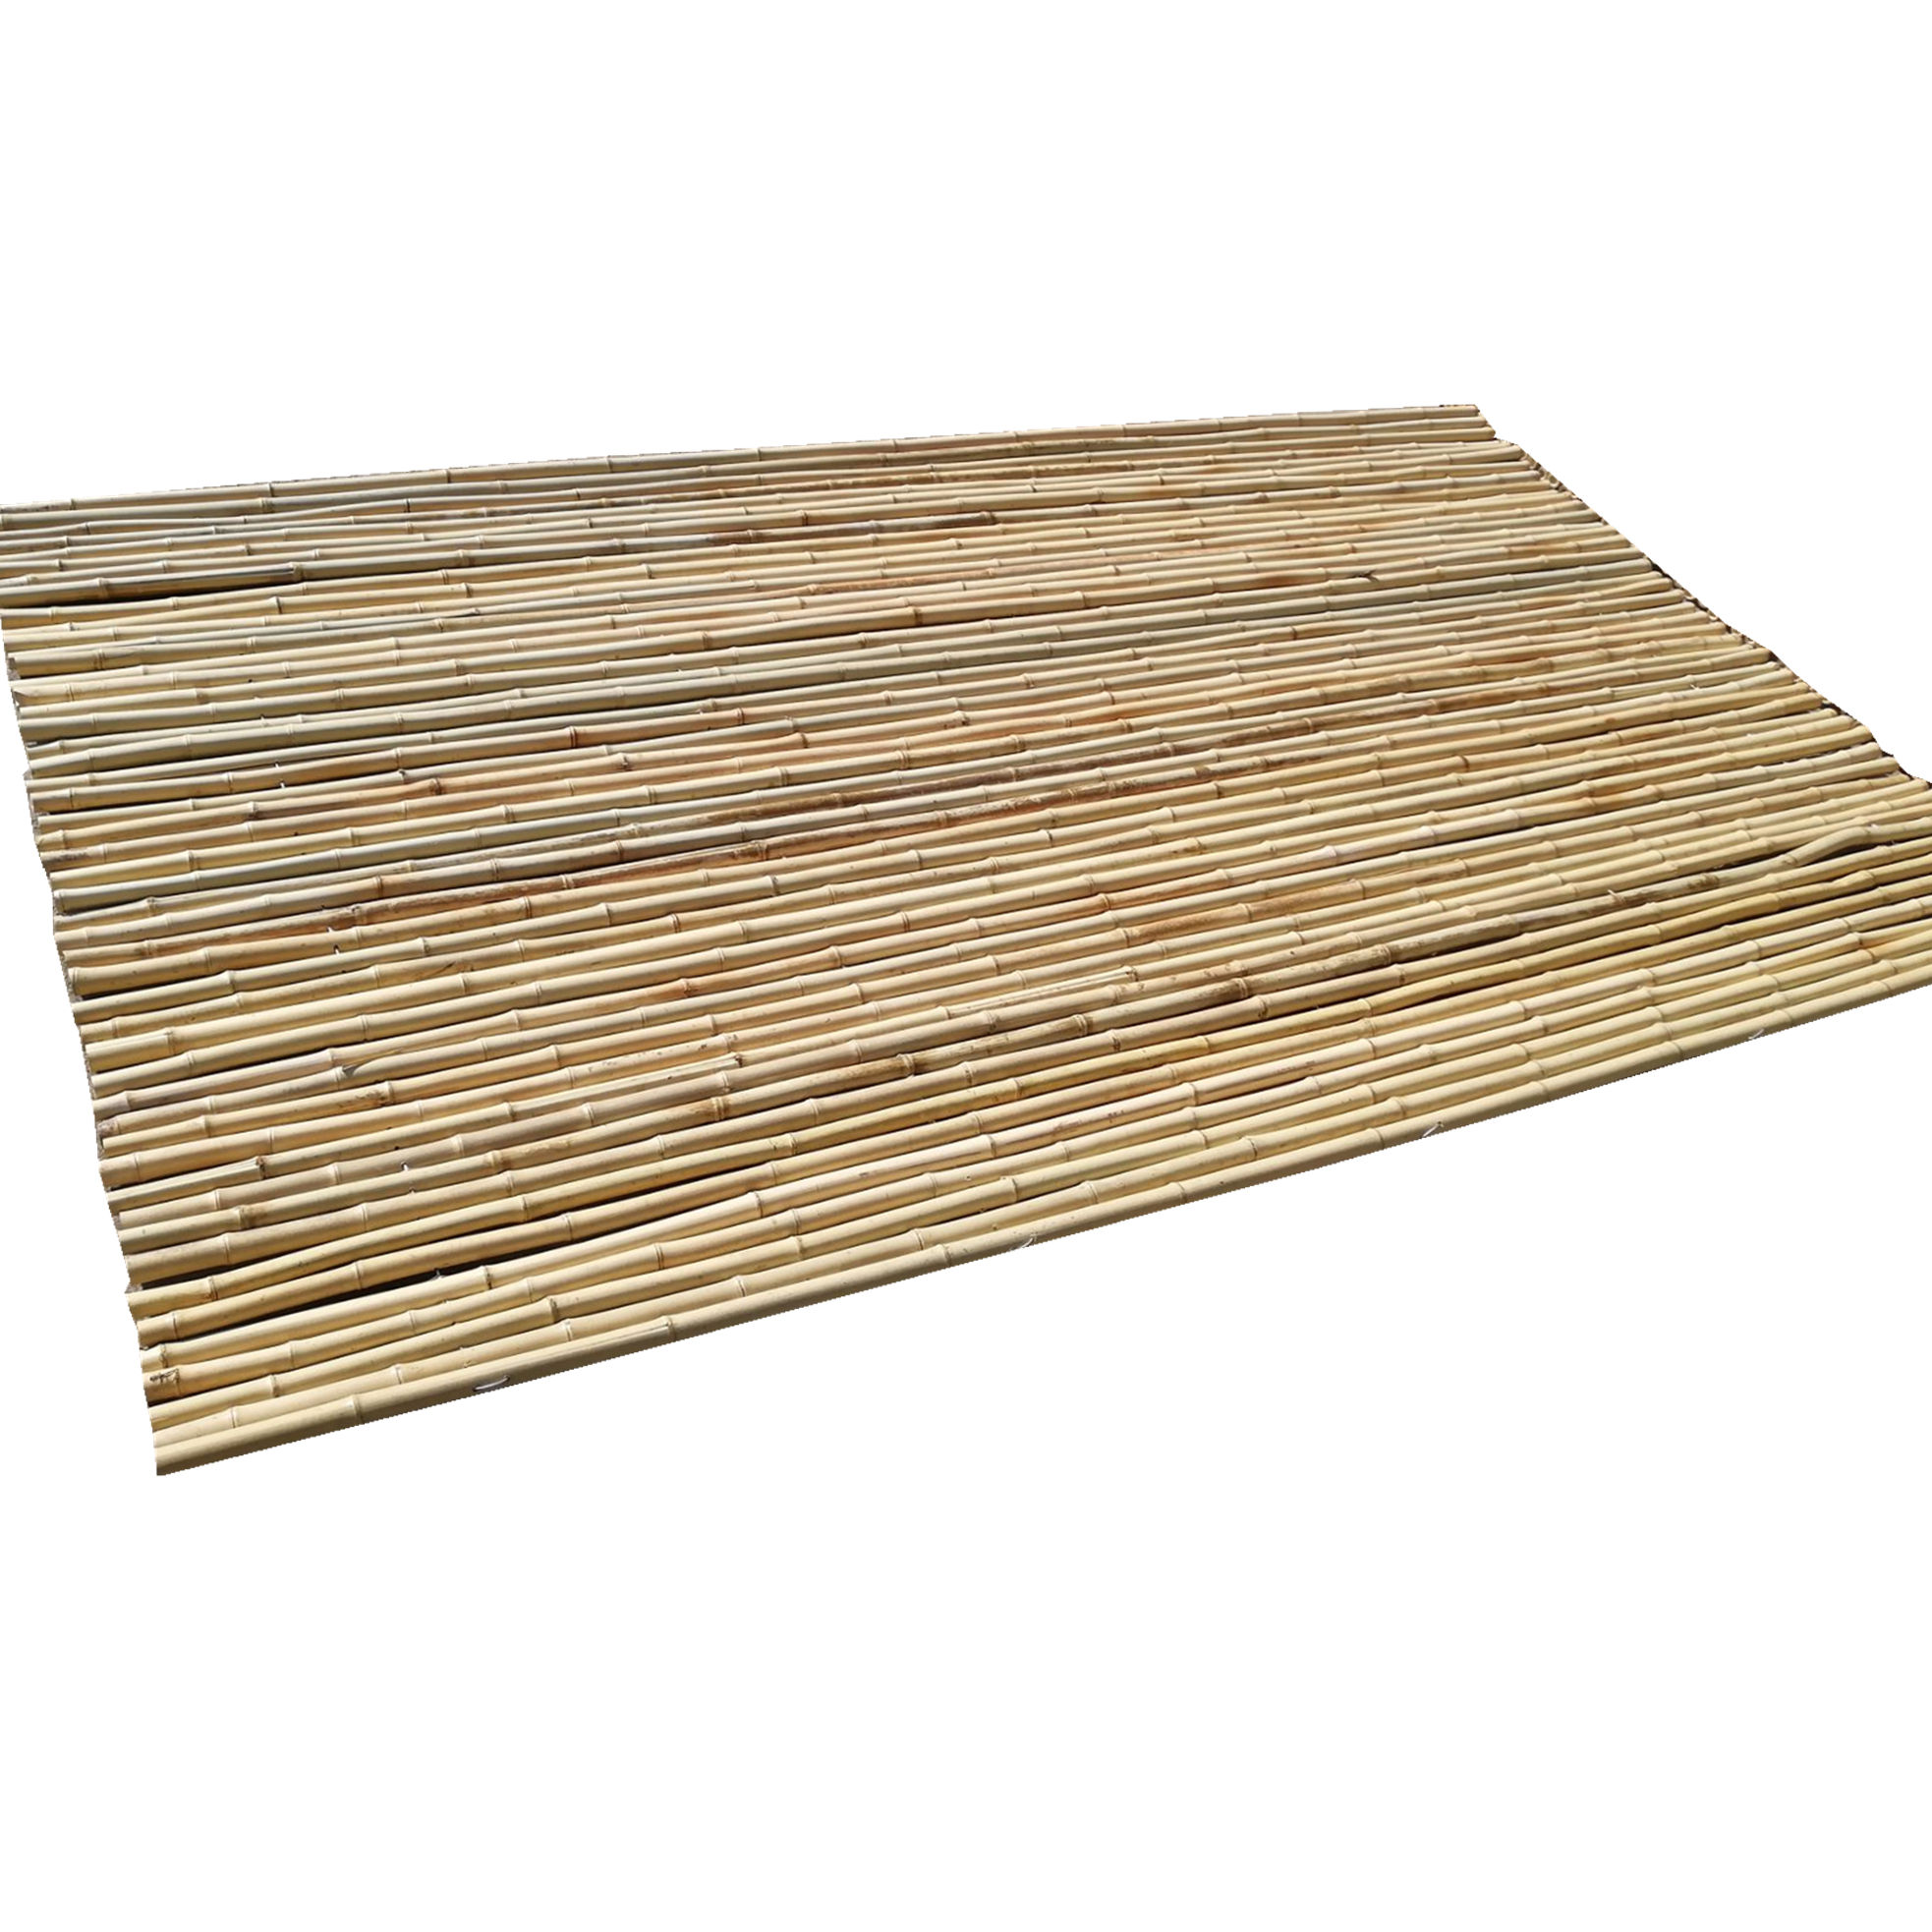 bamboo fence garden fencing panel with natural bamboo